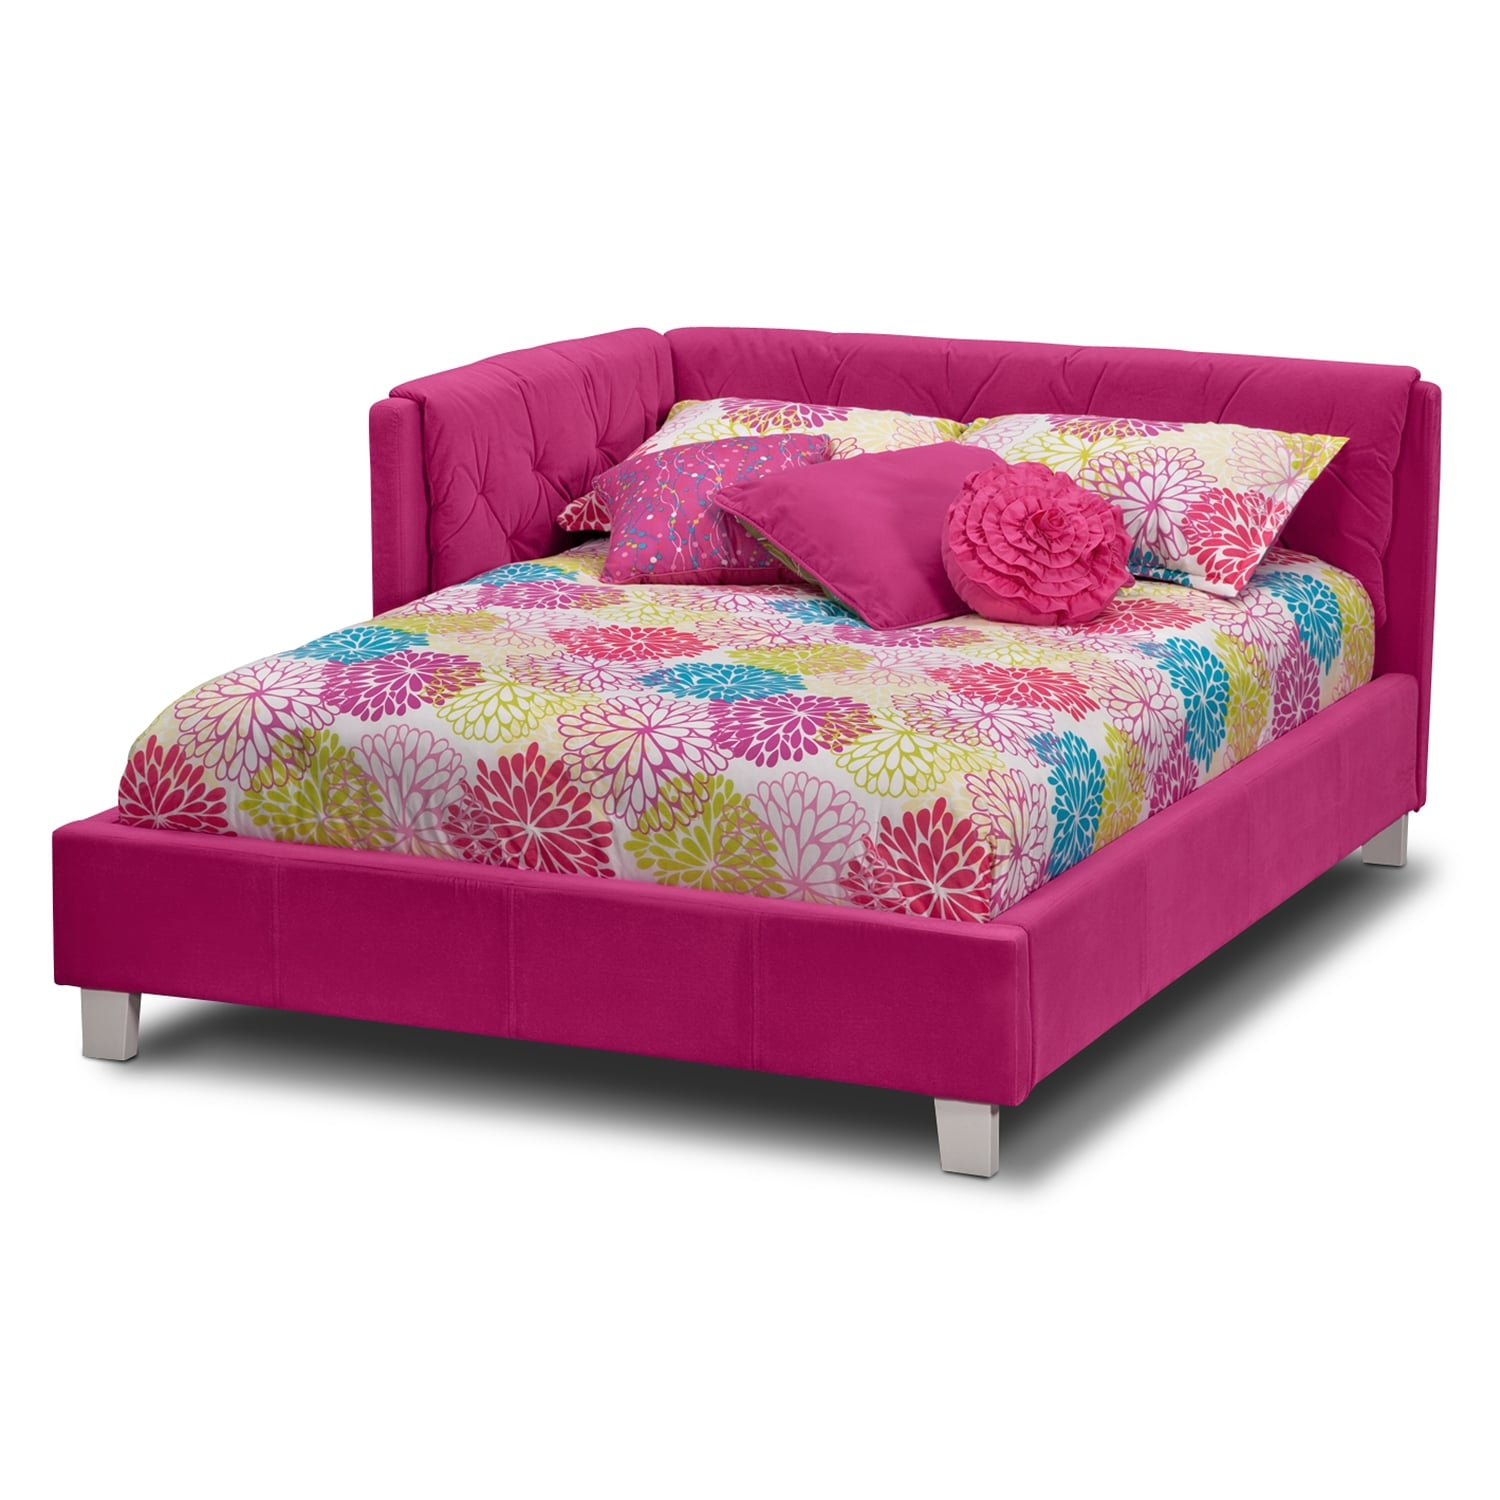 Jordan Full Corner Bed - Pink : Value City Furniture